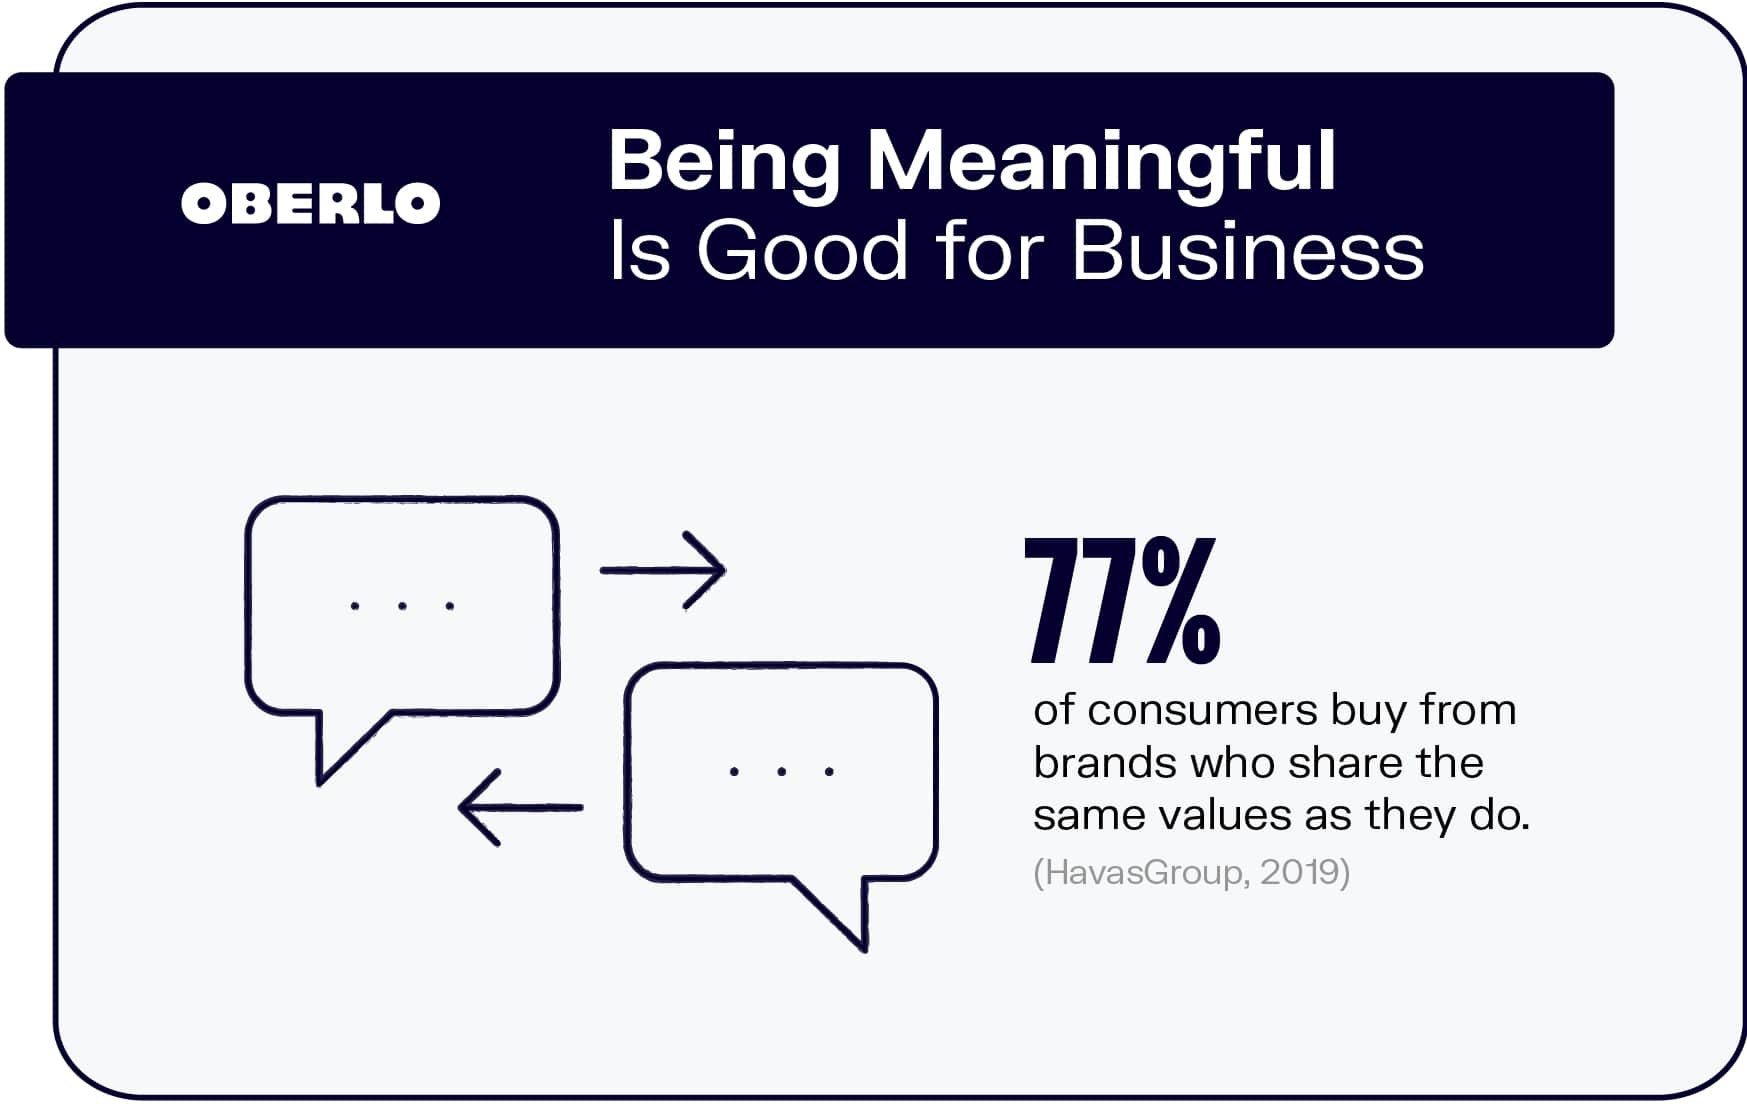 Being Meaningful Is Good for Business